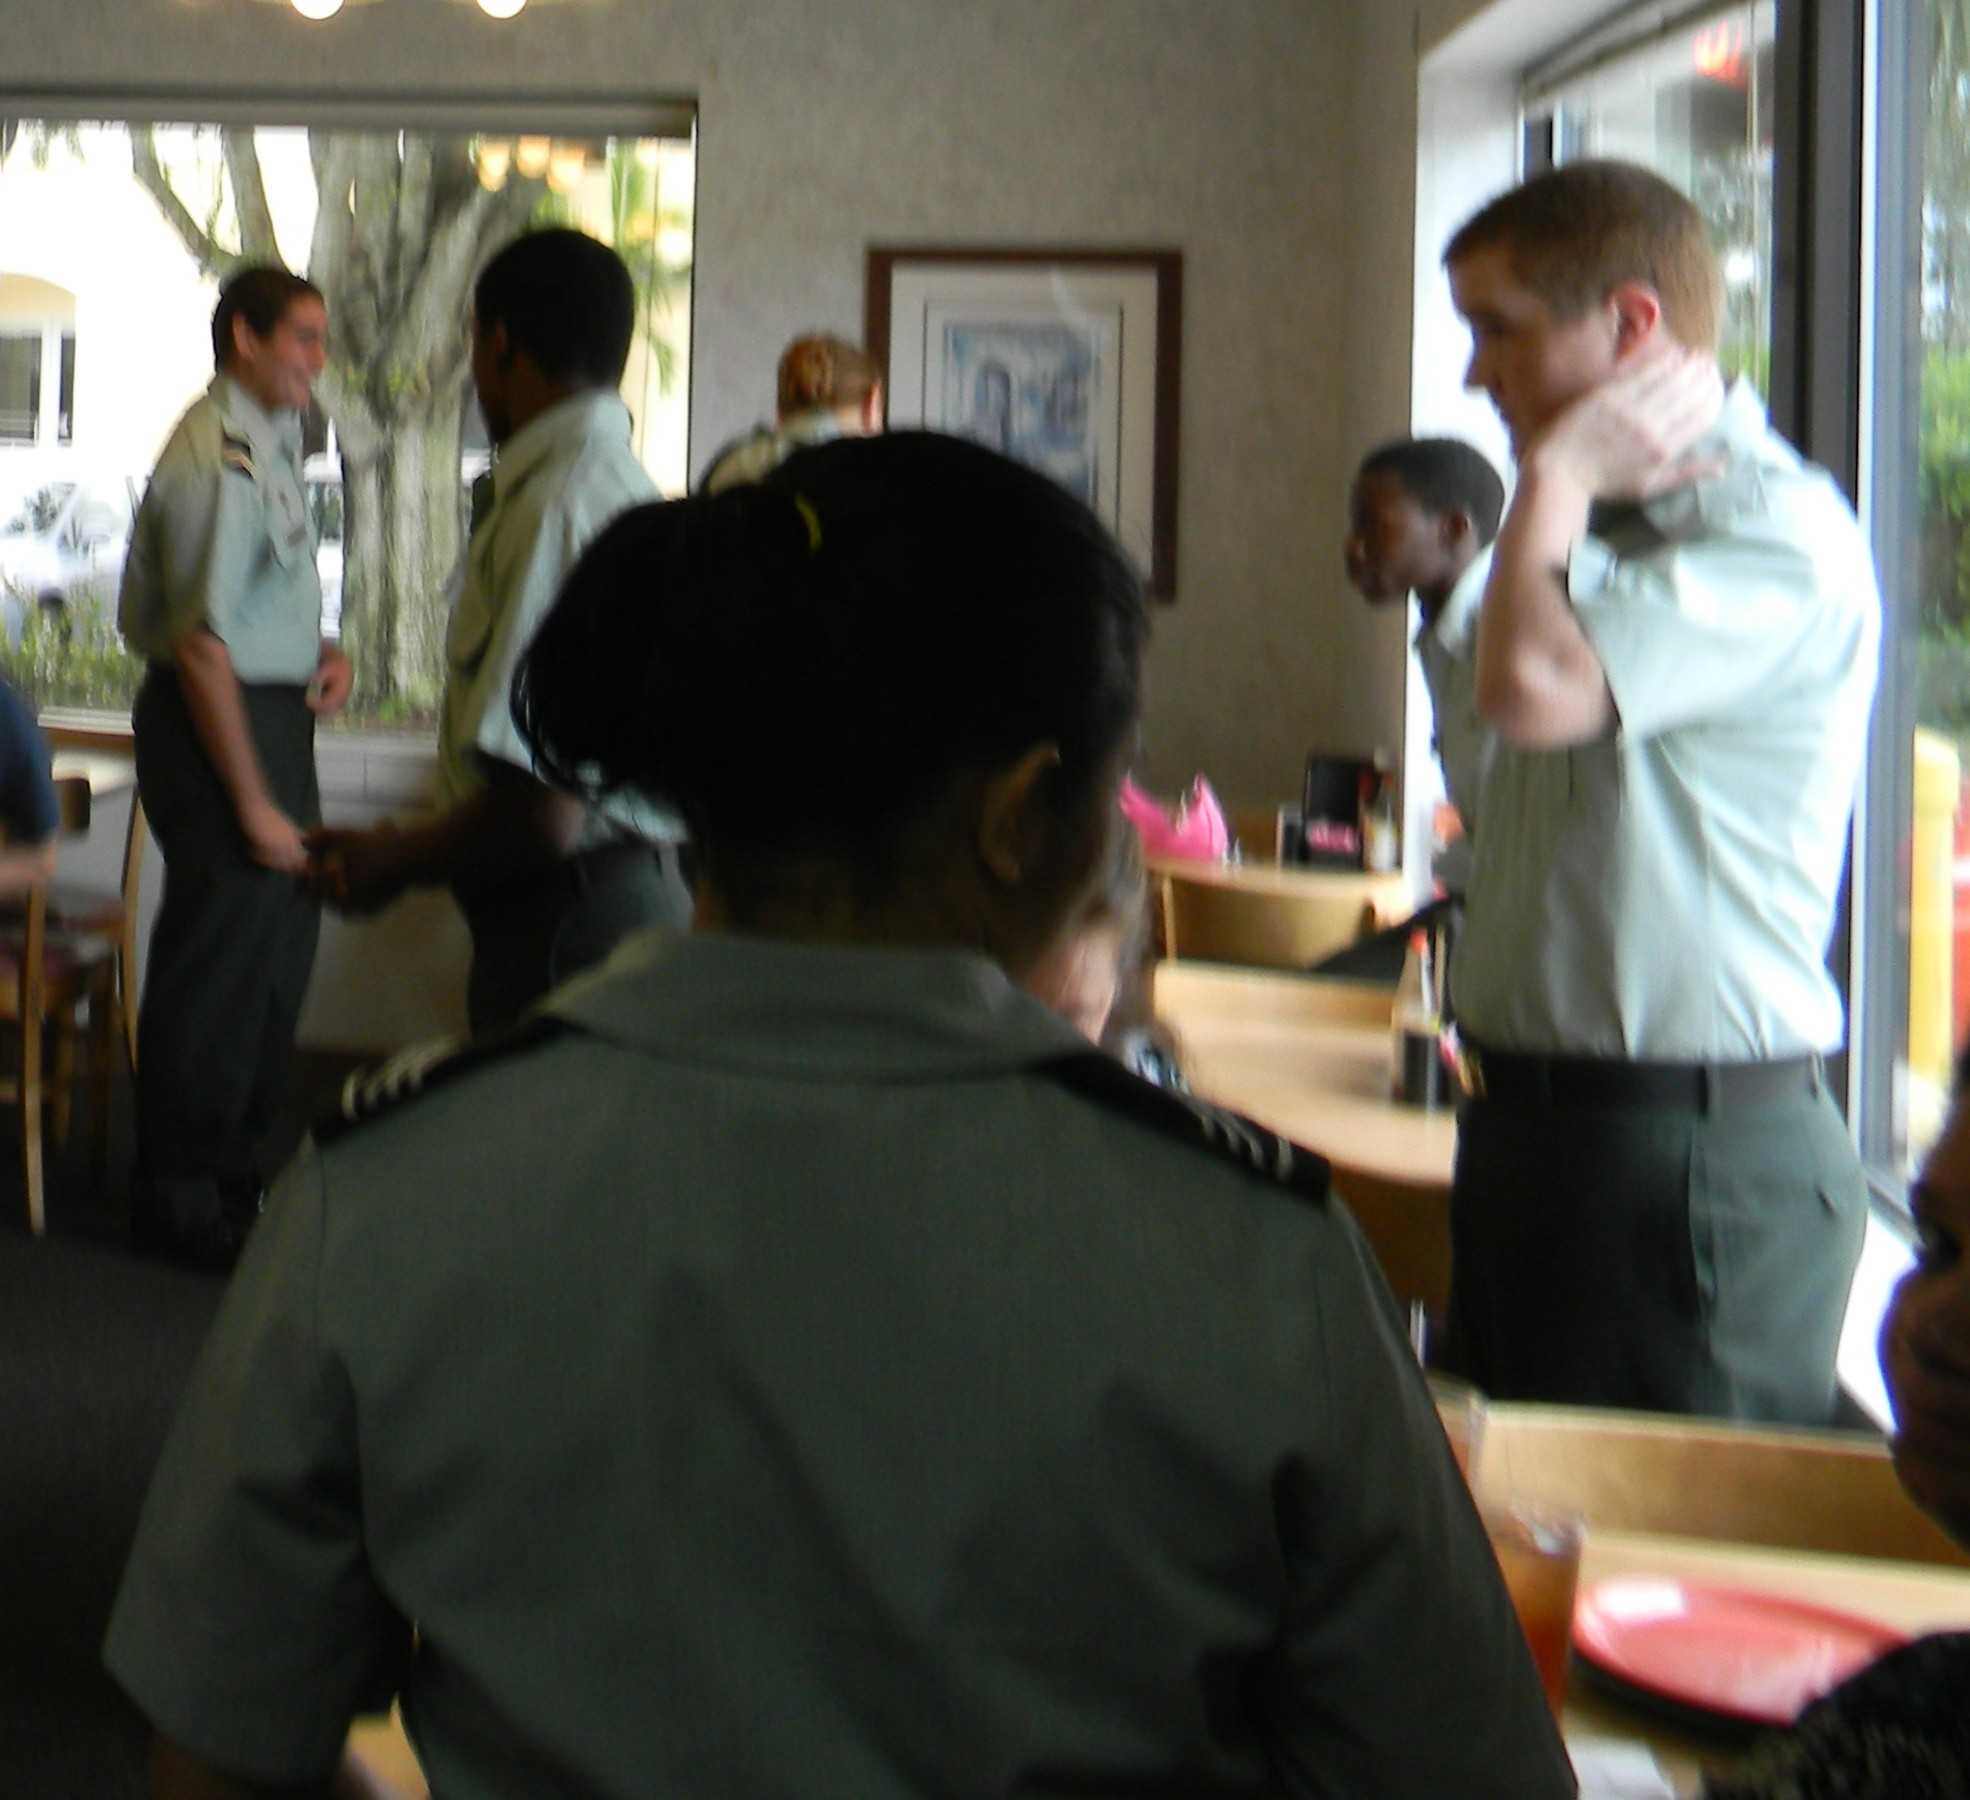 Westwood High School cadets raise funds by serving diners